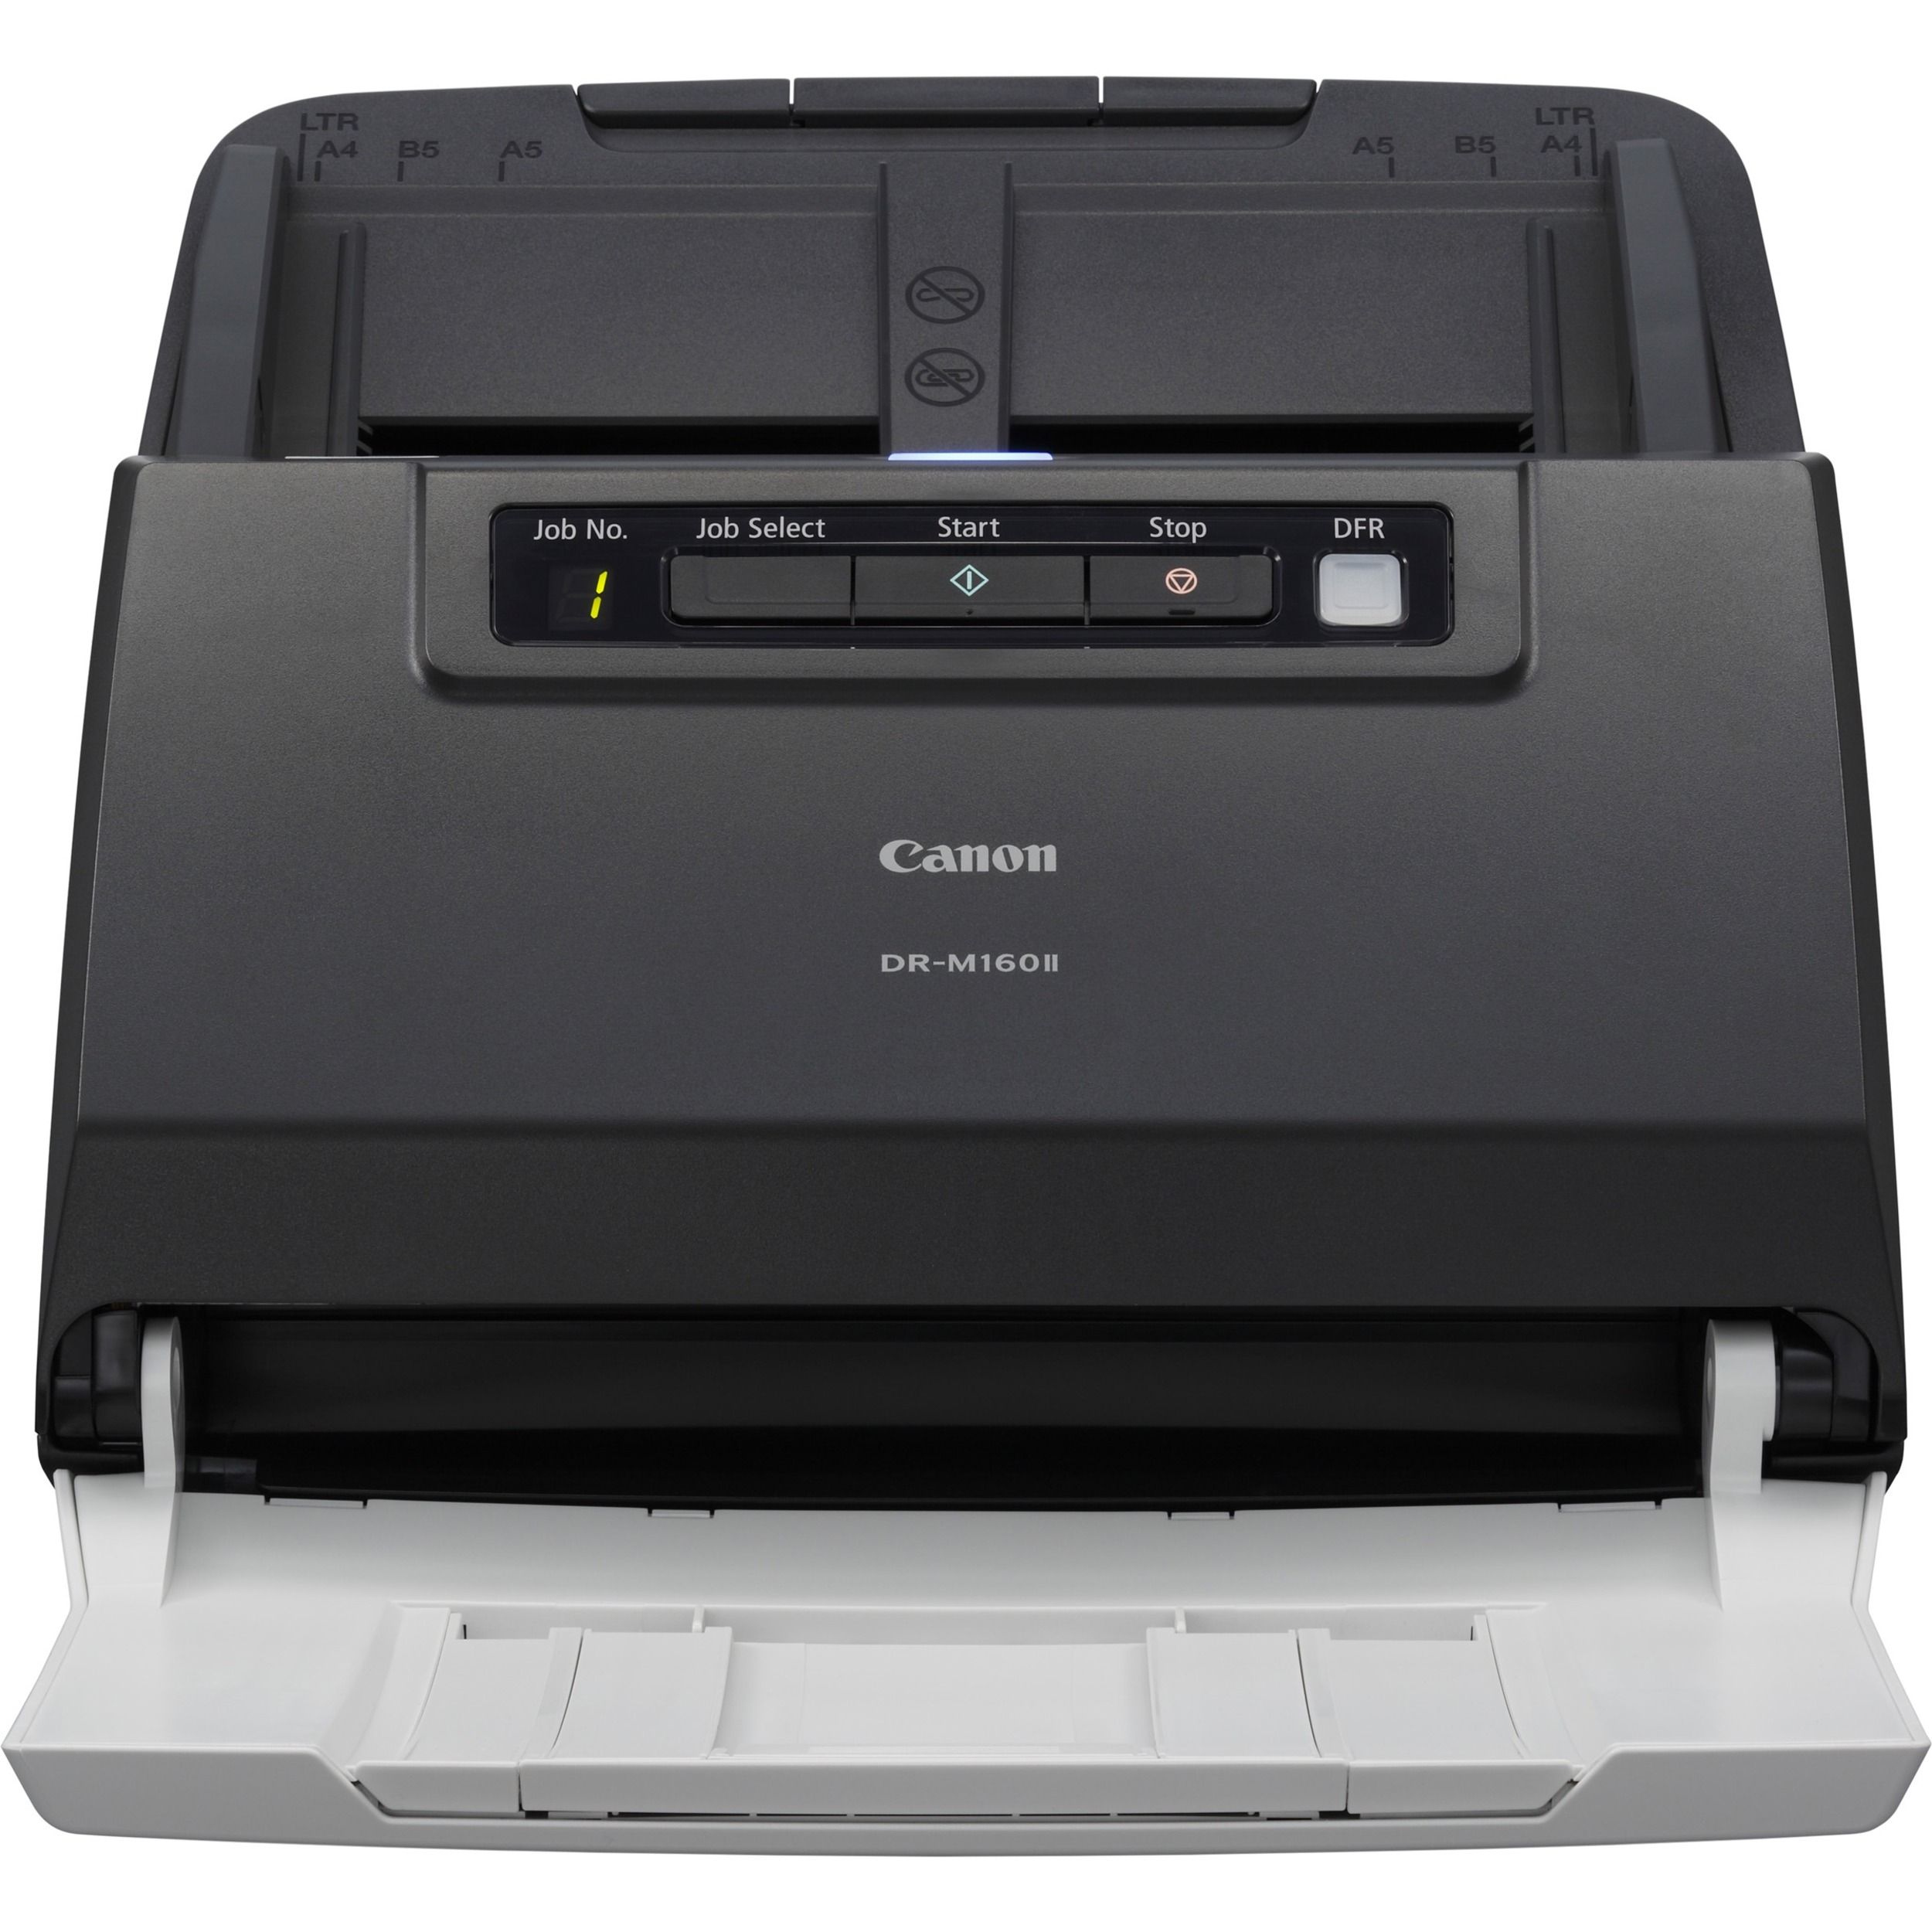 Canon imageFORMULA DR-M160II Sheetfed Scanner - 600 dpi Optical